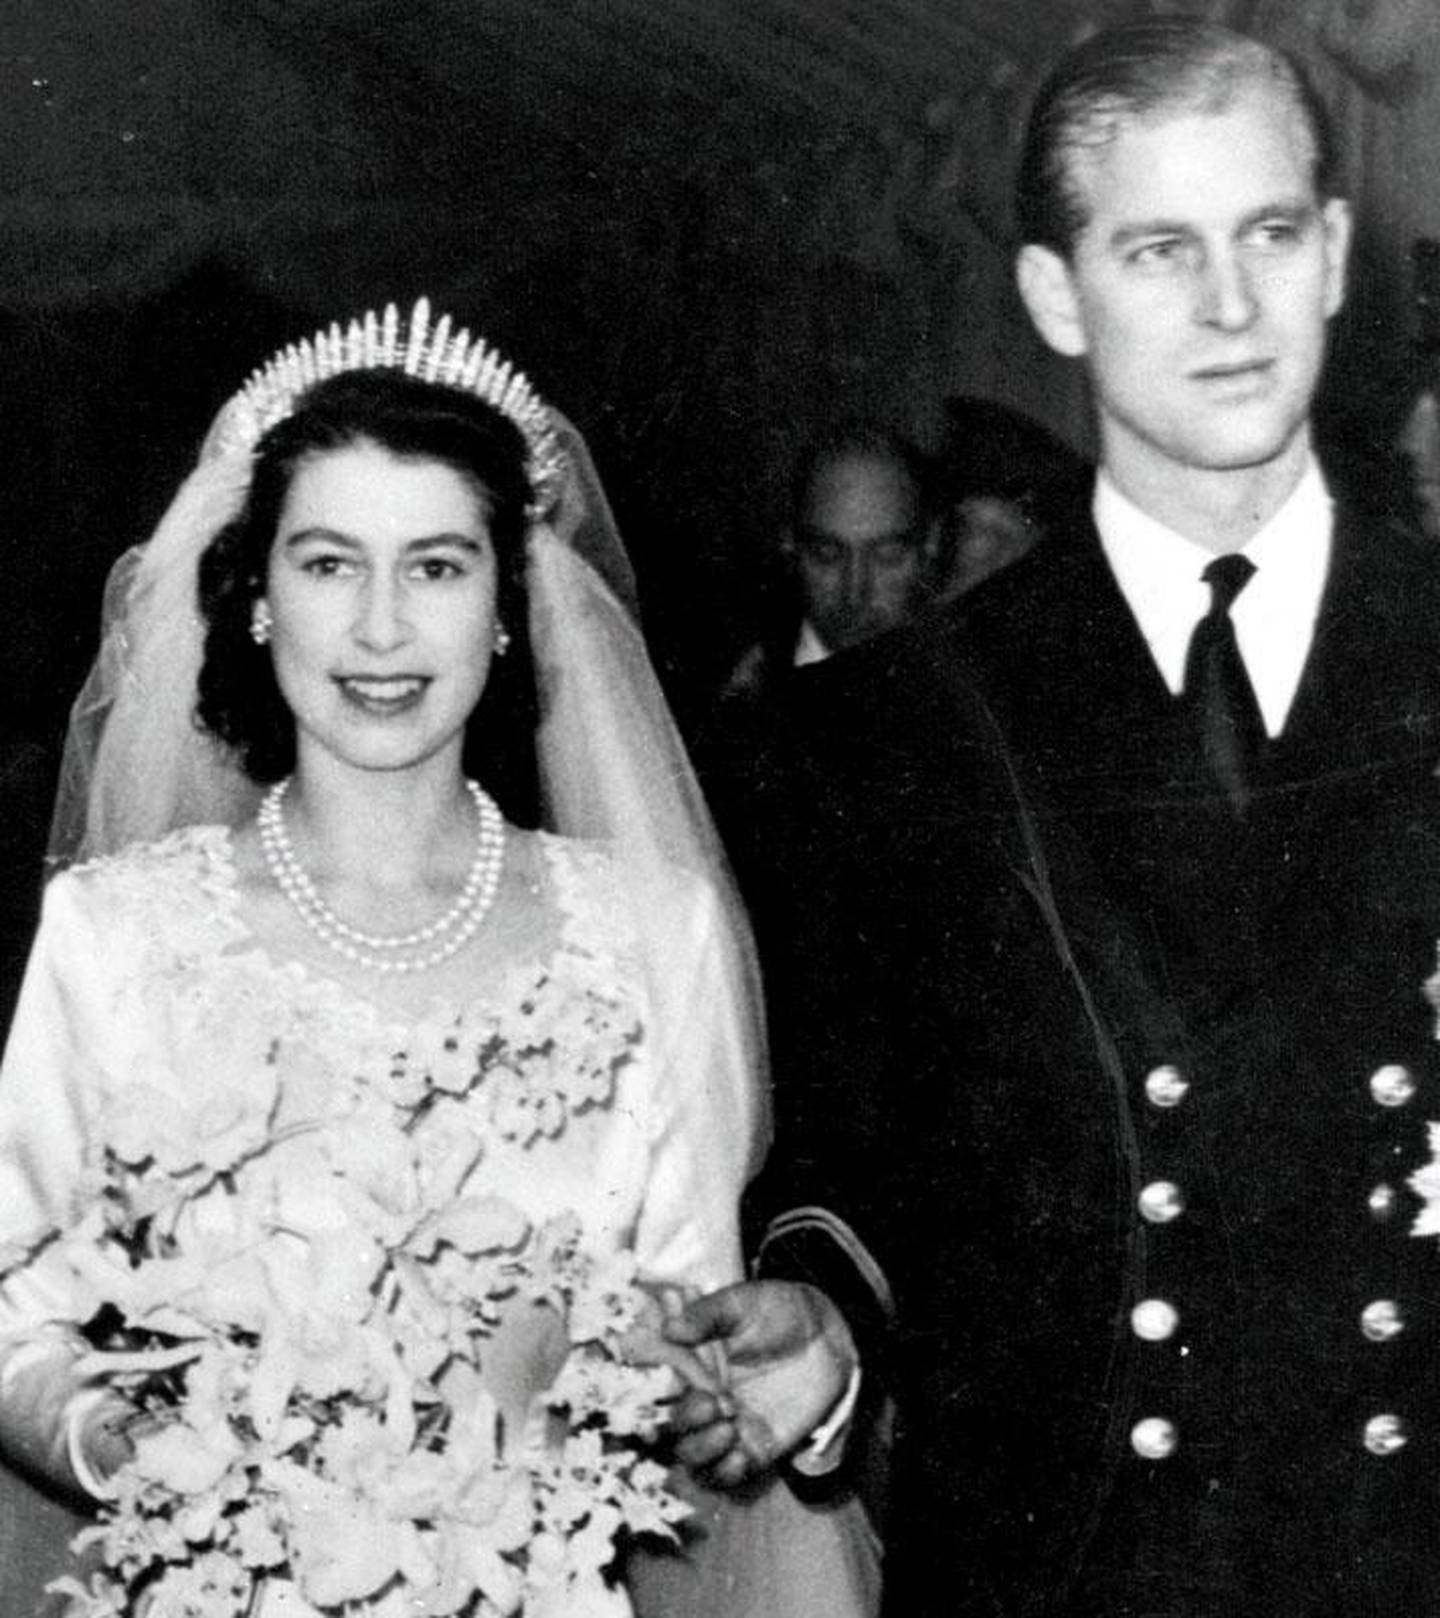 Queen Elizabeth II, as Princess Elizabeth, and her husband the Duke of Edinburgh, styled Prince Philip in 1957, on their wedding day. She became queen on her father King George VI's death in 1952.   (Photo by Hulton Archive/Getty Images)